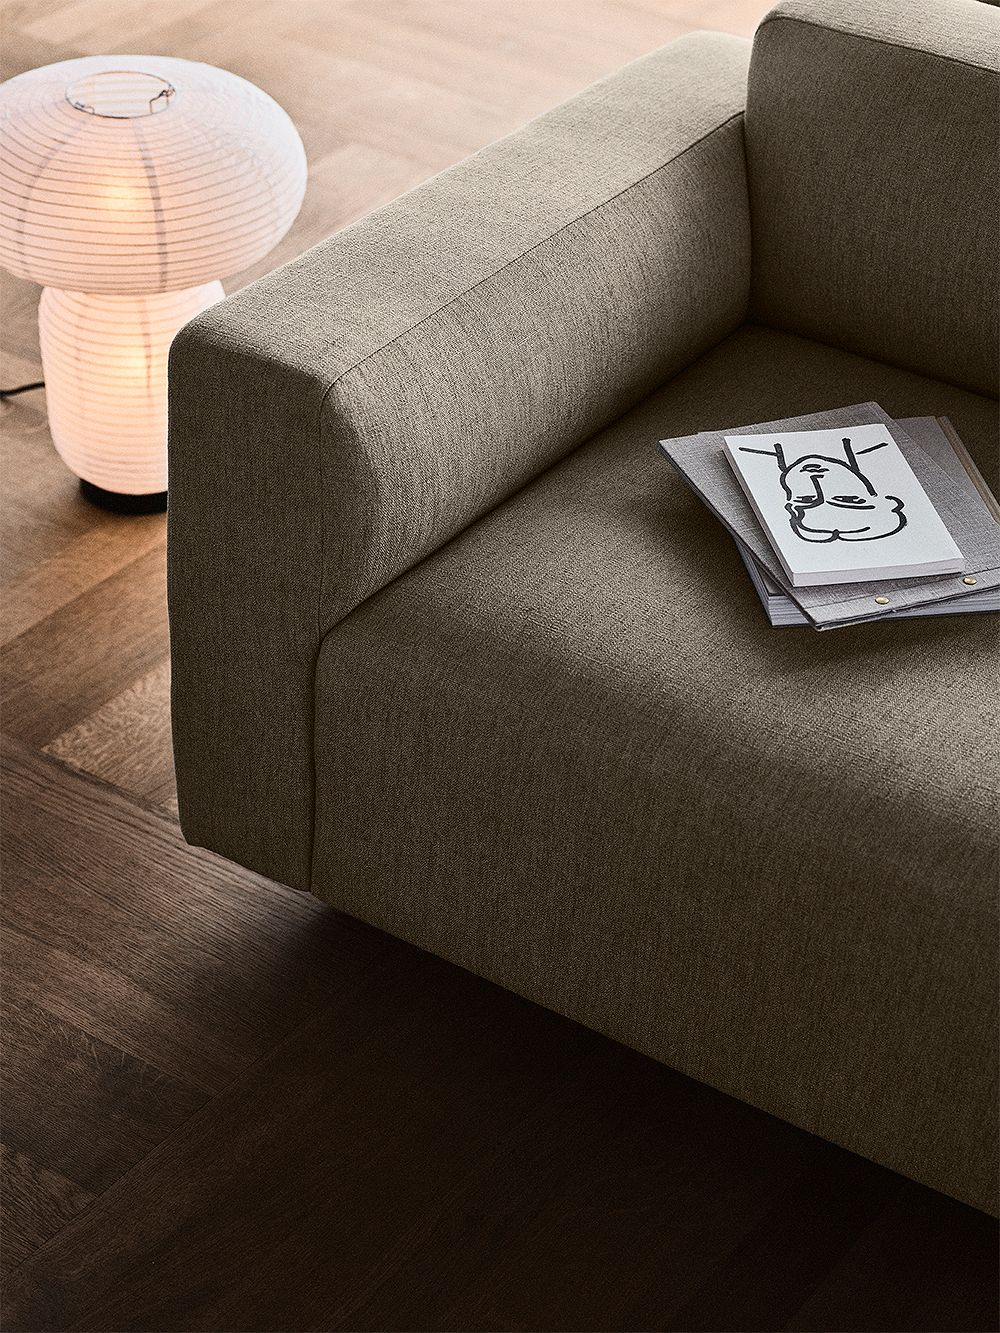 &Tradition Develius sofa and Formakami light